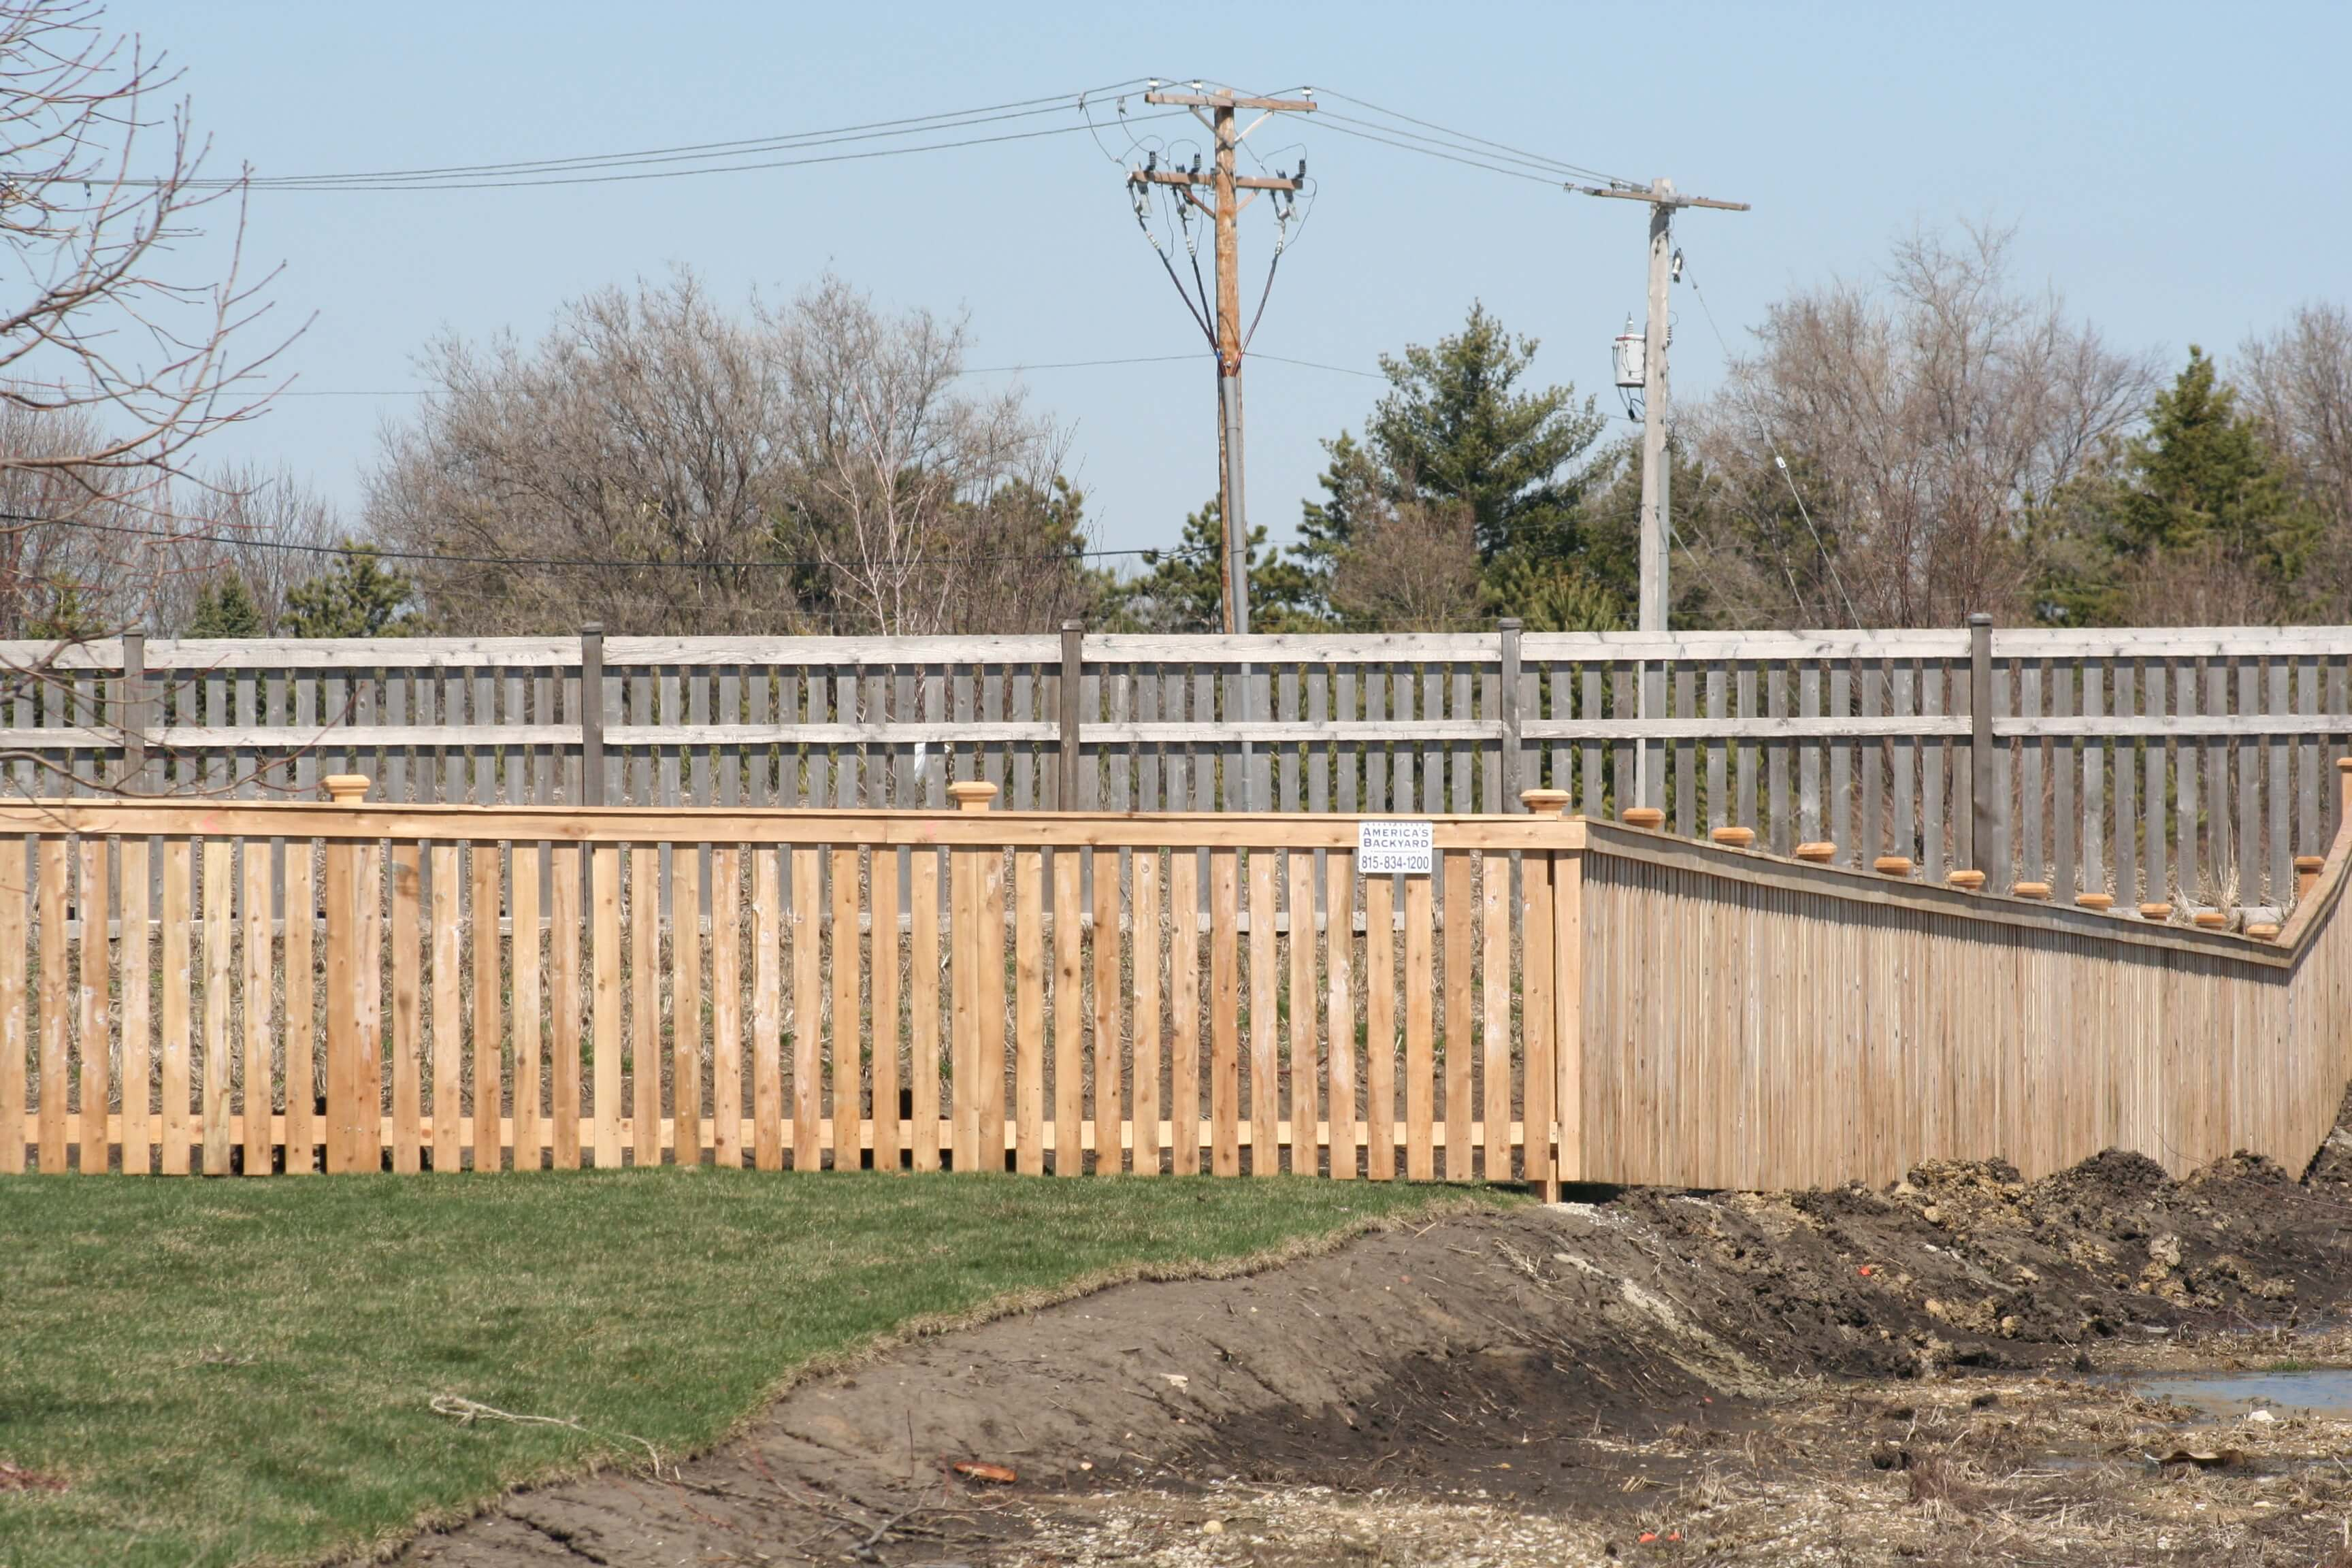 Spaced Cedar Fences Joliet Il Americas Backyard Chicagoland throughout 15 Clever Tricks of How to Craft America'S Backyard Fence